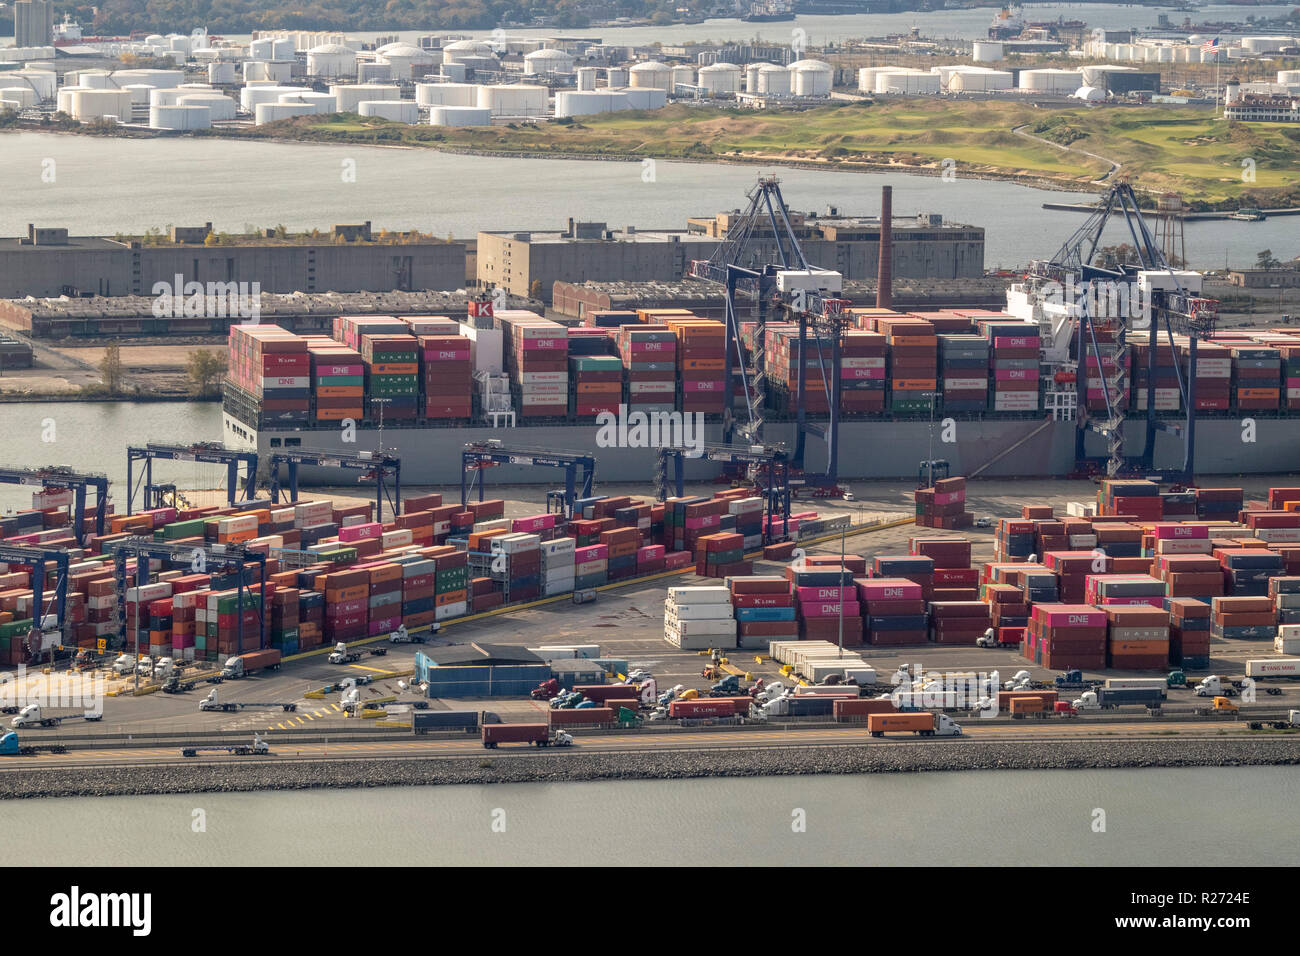 helicopter aerial view of GCT Bayonne container terminal, Bayonne, Jersey City, New Jersey, USA Stock Photo